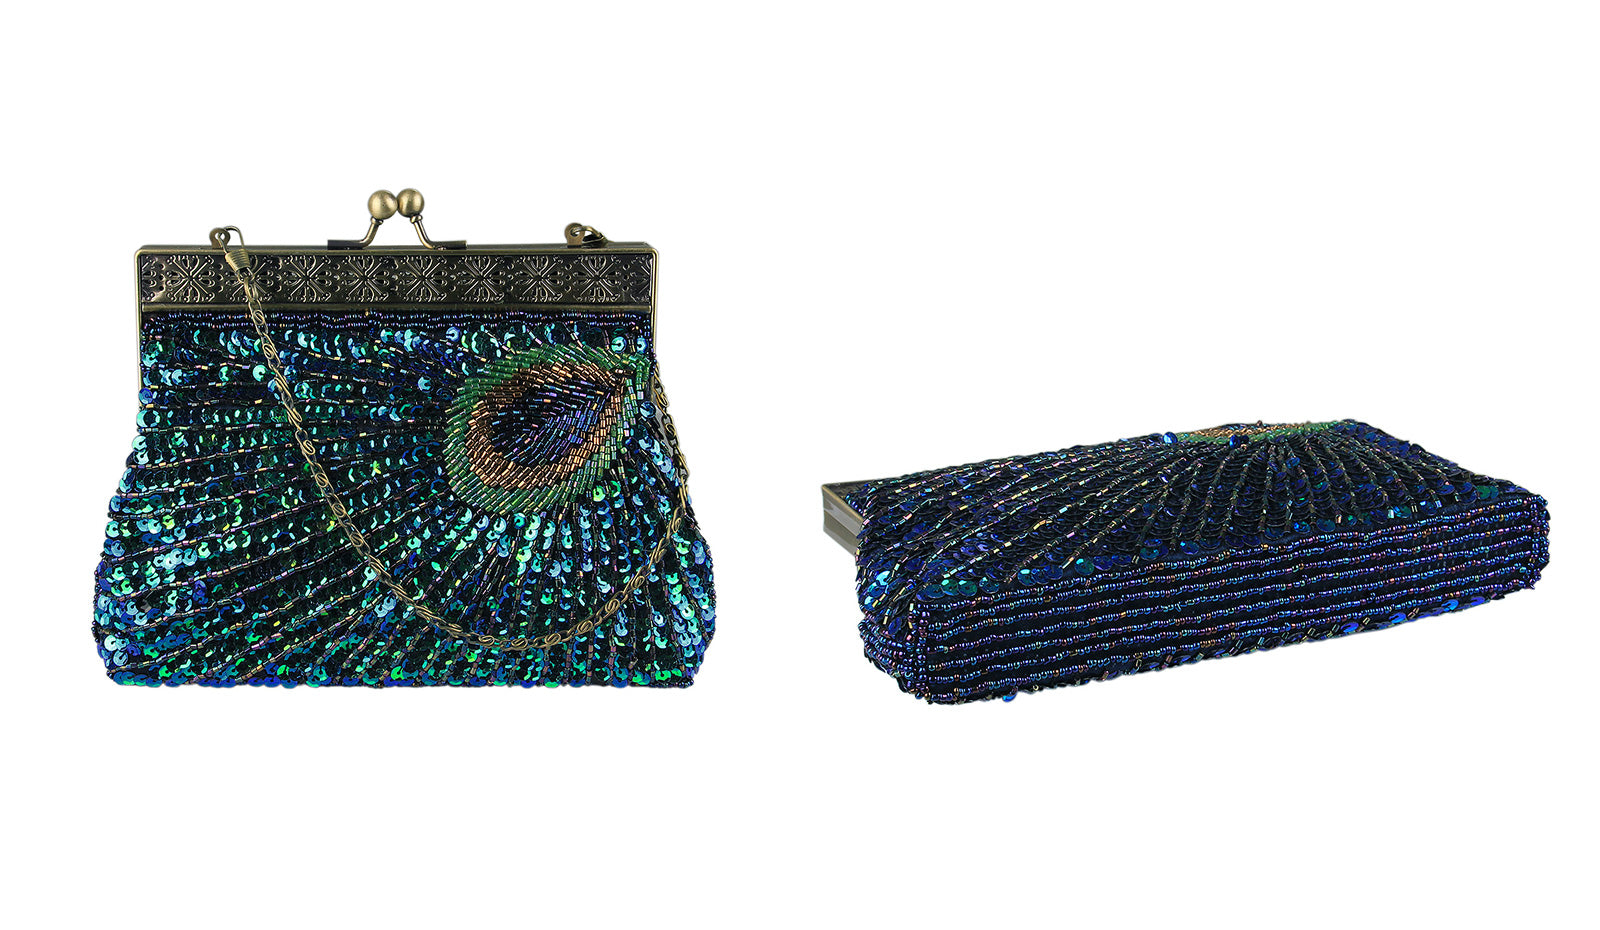 Vintage Clutch Teal Peacock Antique Beaded Sequin Evening Handbag Sunburst Navy and Turquoise Purse